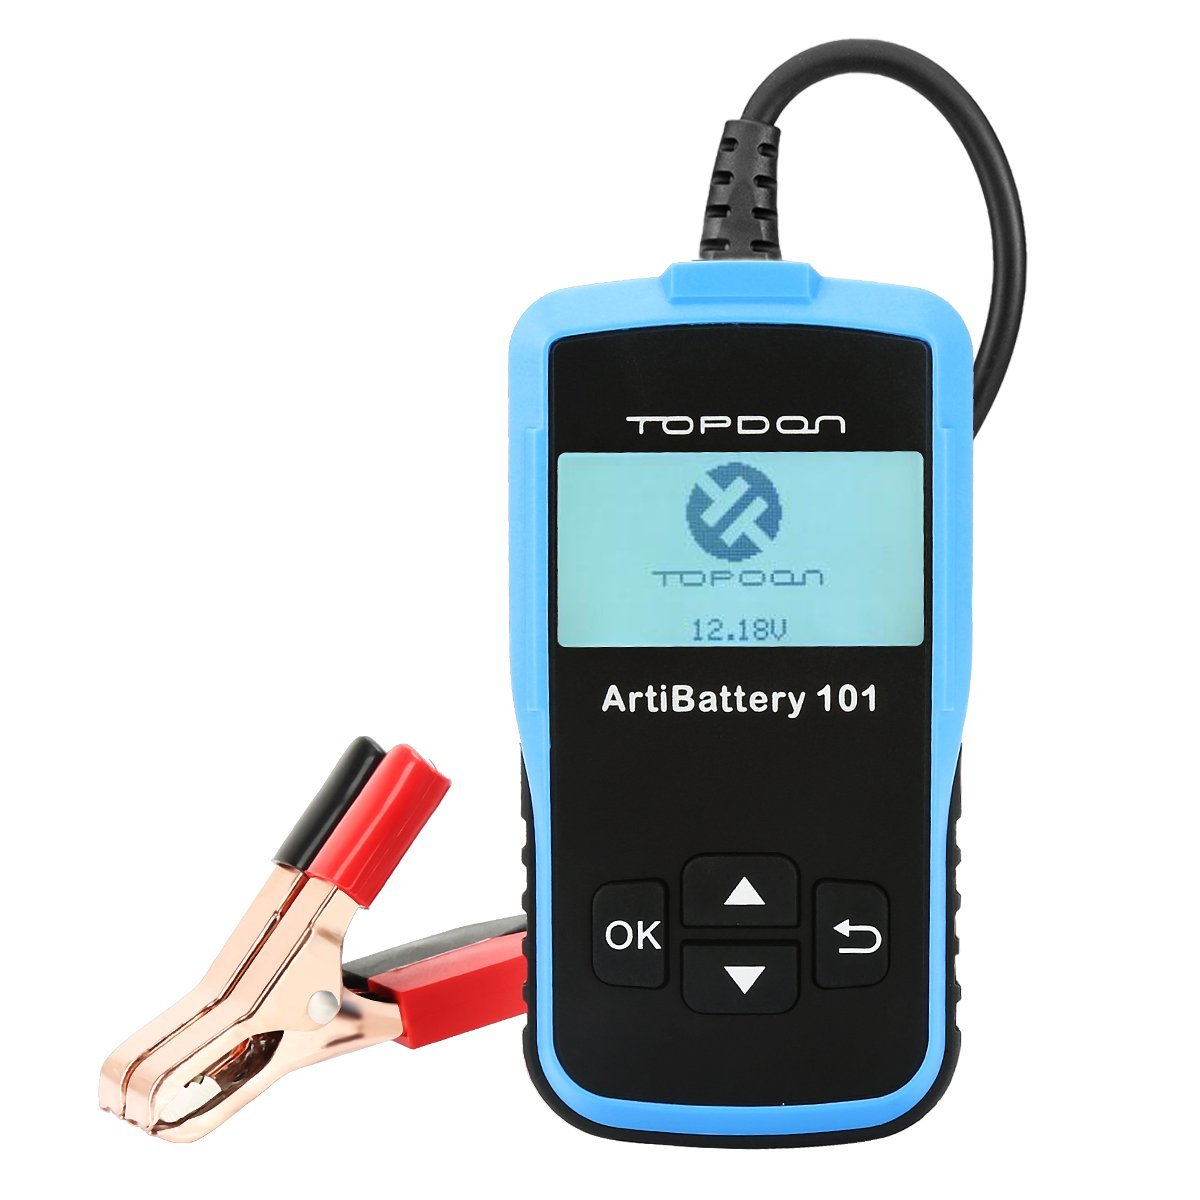 TT TOPDON Auto Battery Tester, Digital Battery Analyzer 8-16V and 100-2000 CCA Car Battery Load Tester for Lead Acid, AGM Flat Plate, Spiral Plate, and GEL Battery